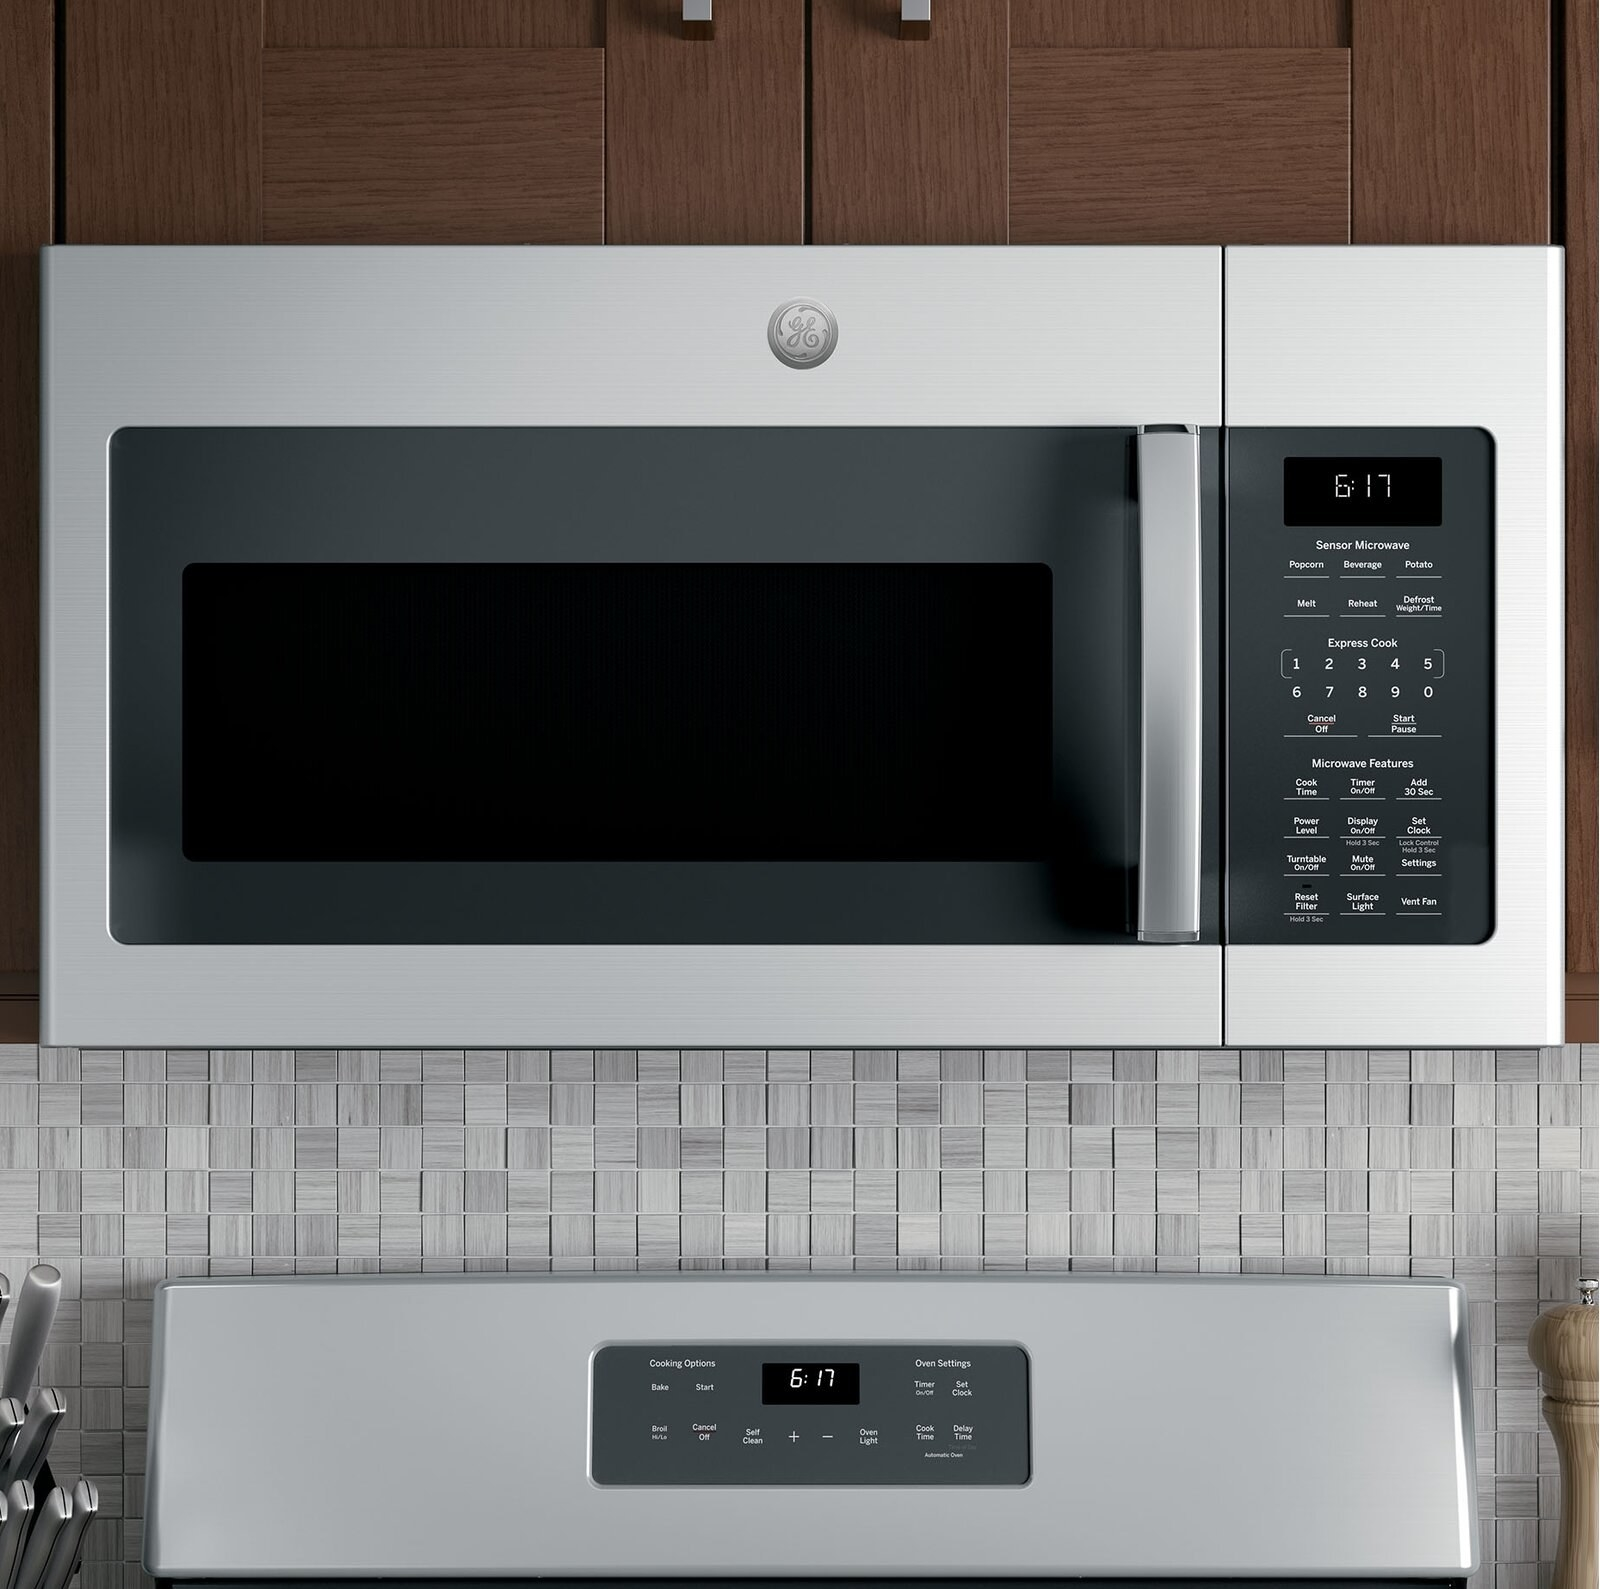 The microwave, which is mounted over the stove, in brushed steel finish